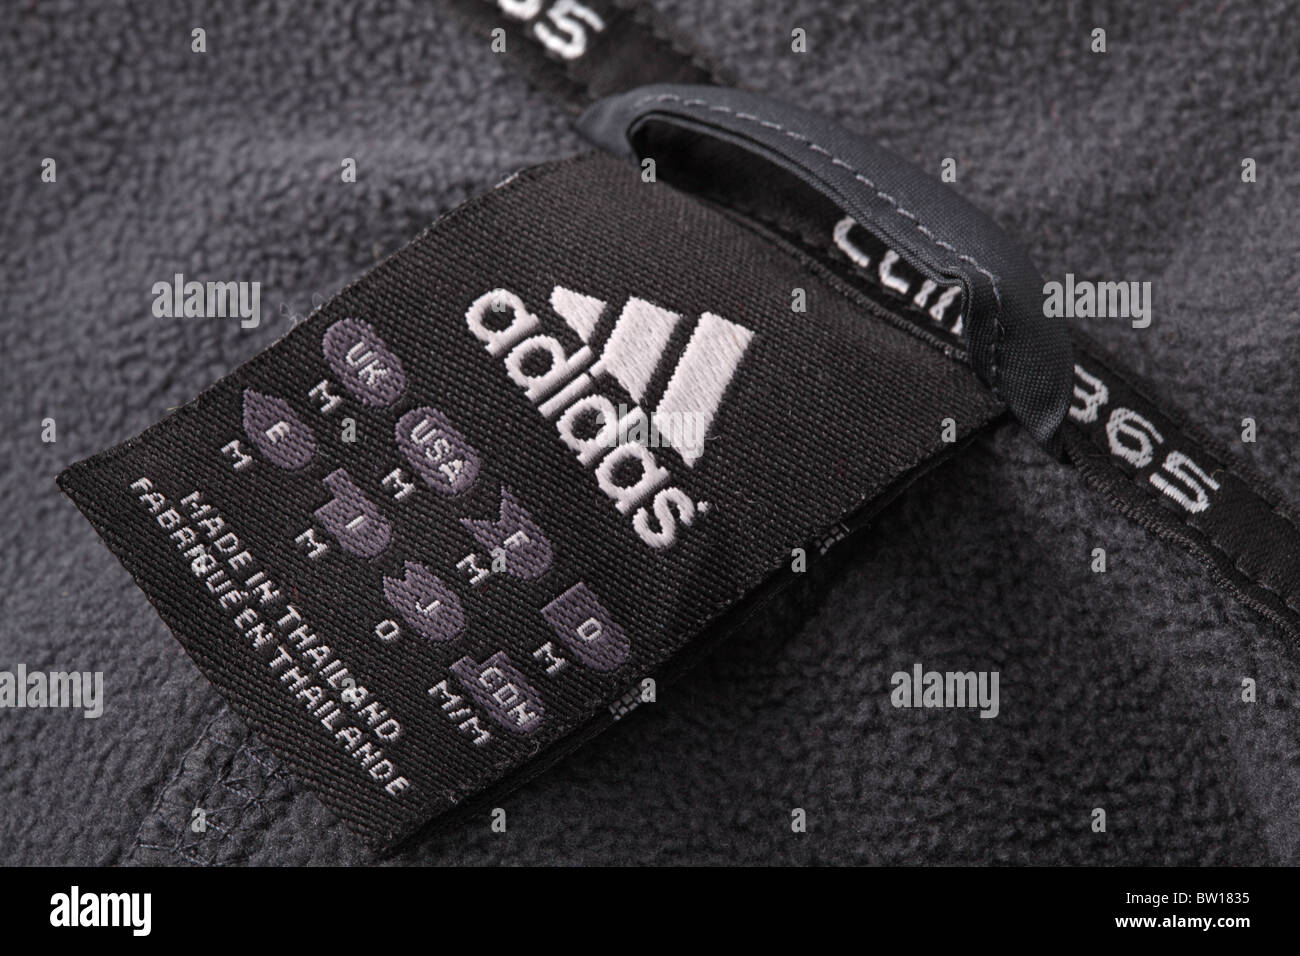 Adidas logo on a black jacket label. Shallow DOF. - Stock Image